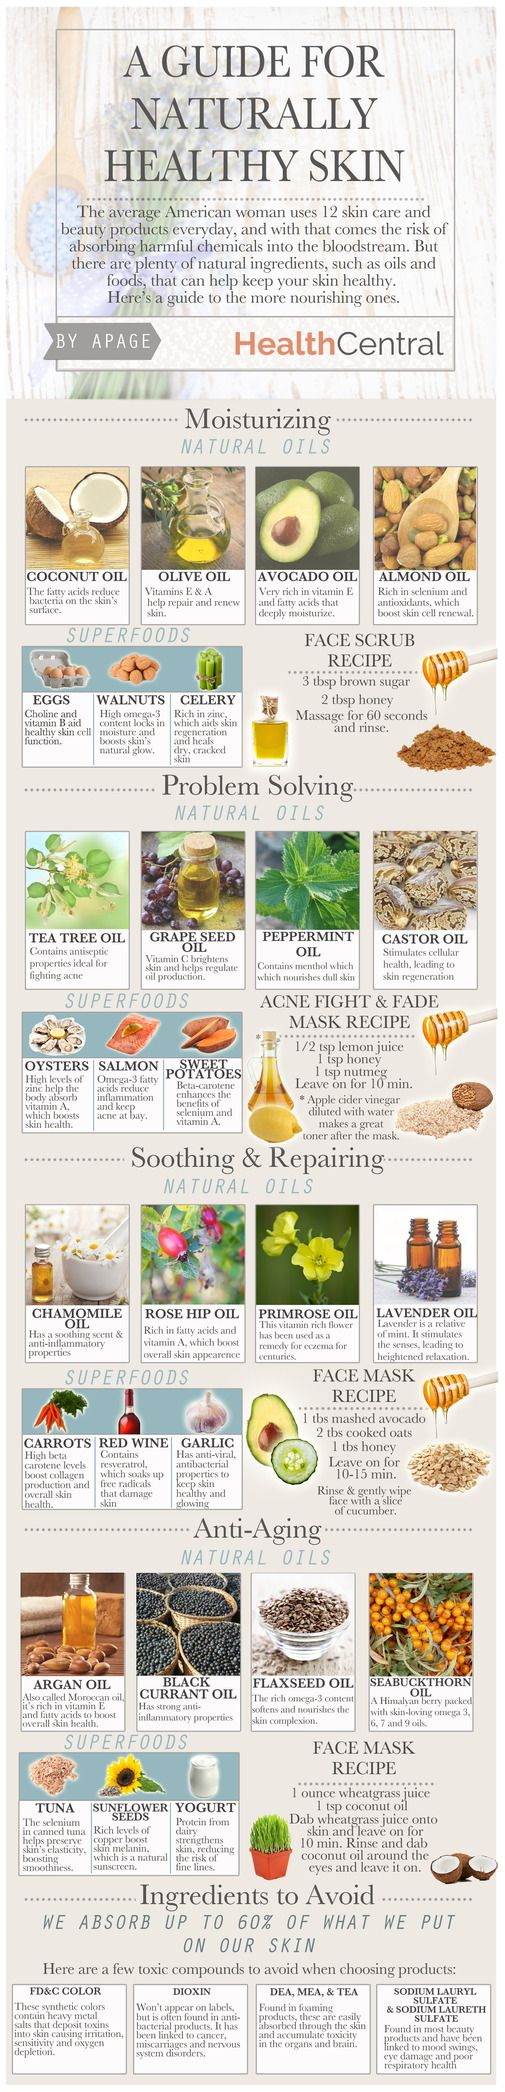 A guide for naturally healthy and beautiful #skin: Learn how to keep your skin healthy and nice in this #infographic: http://www.healthcentral.com/skin-care/c/458275/168362/naturally-infographic?ap=2012